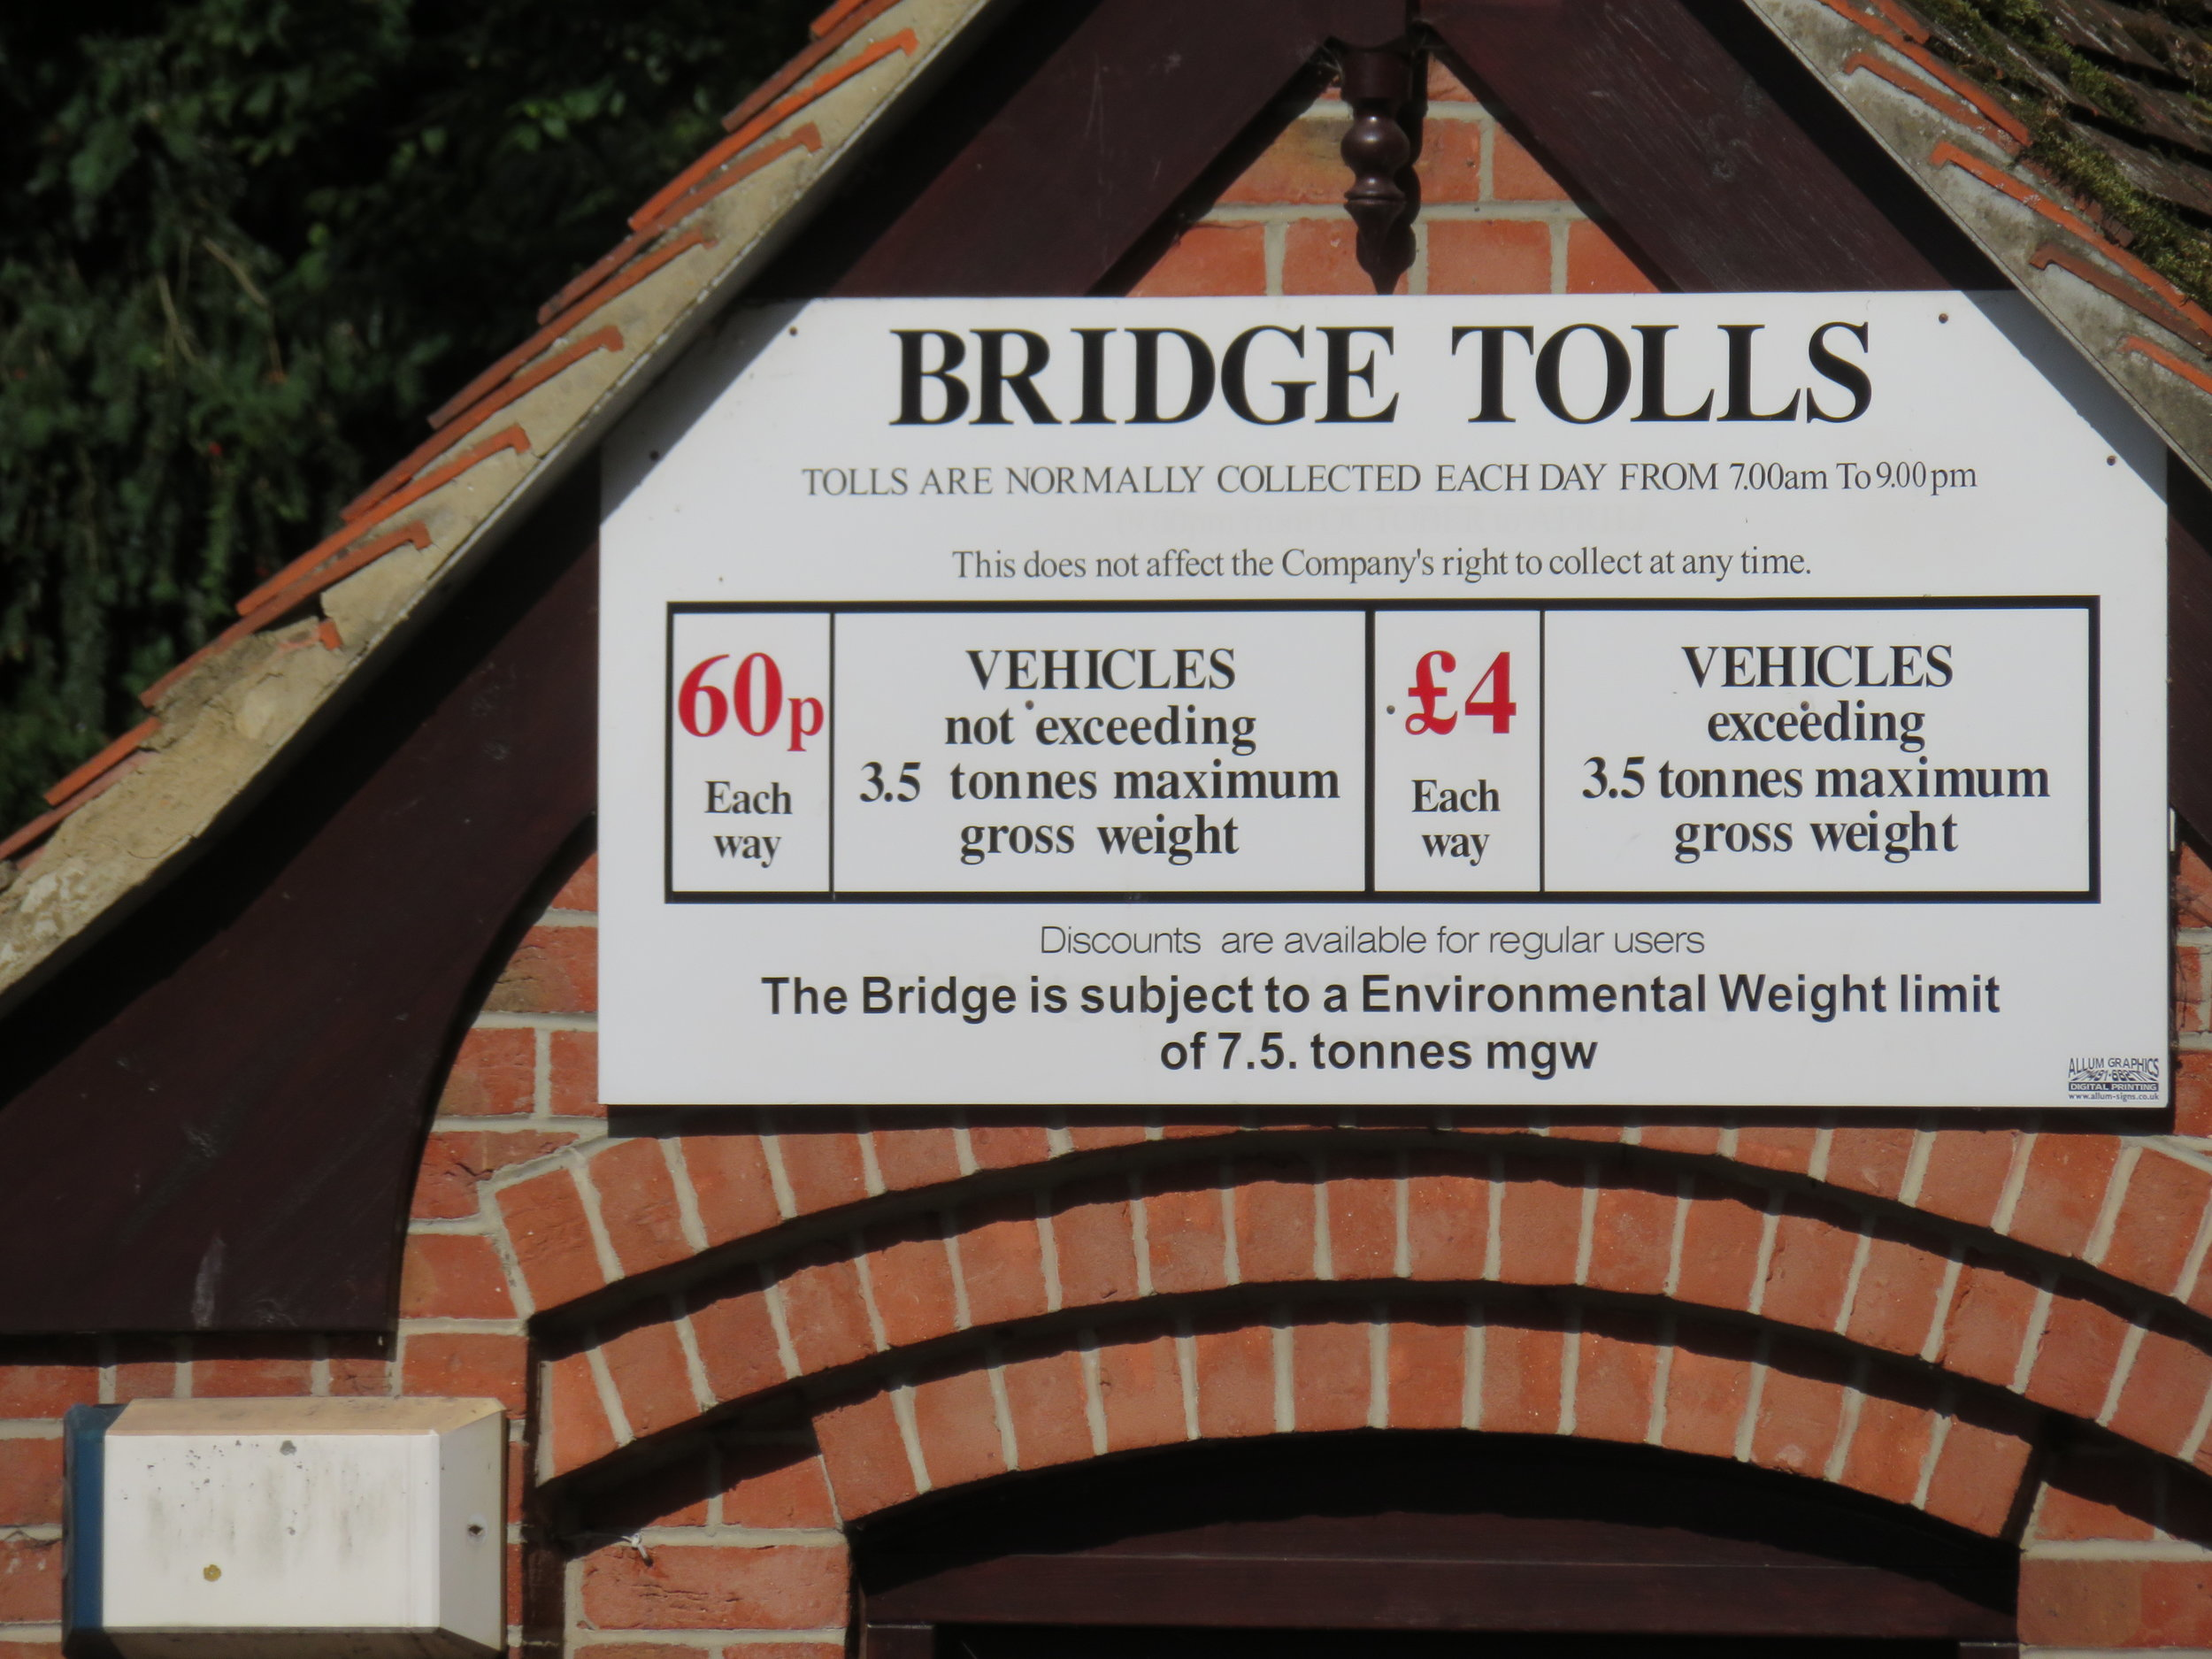 Today's bridge tolls